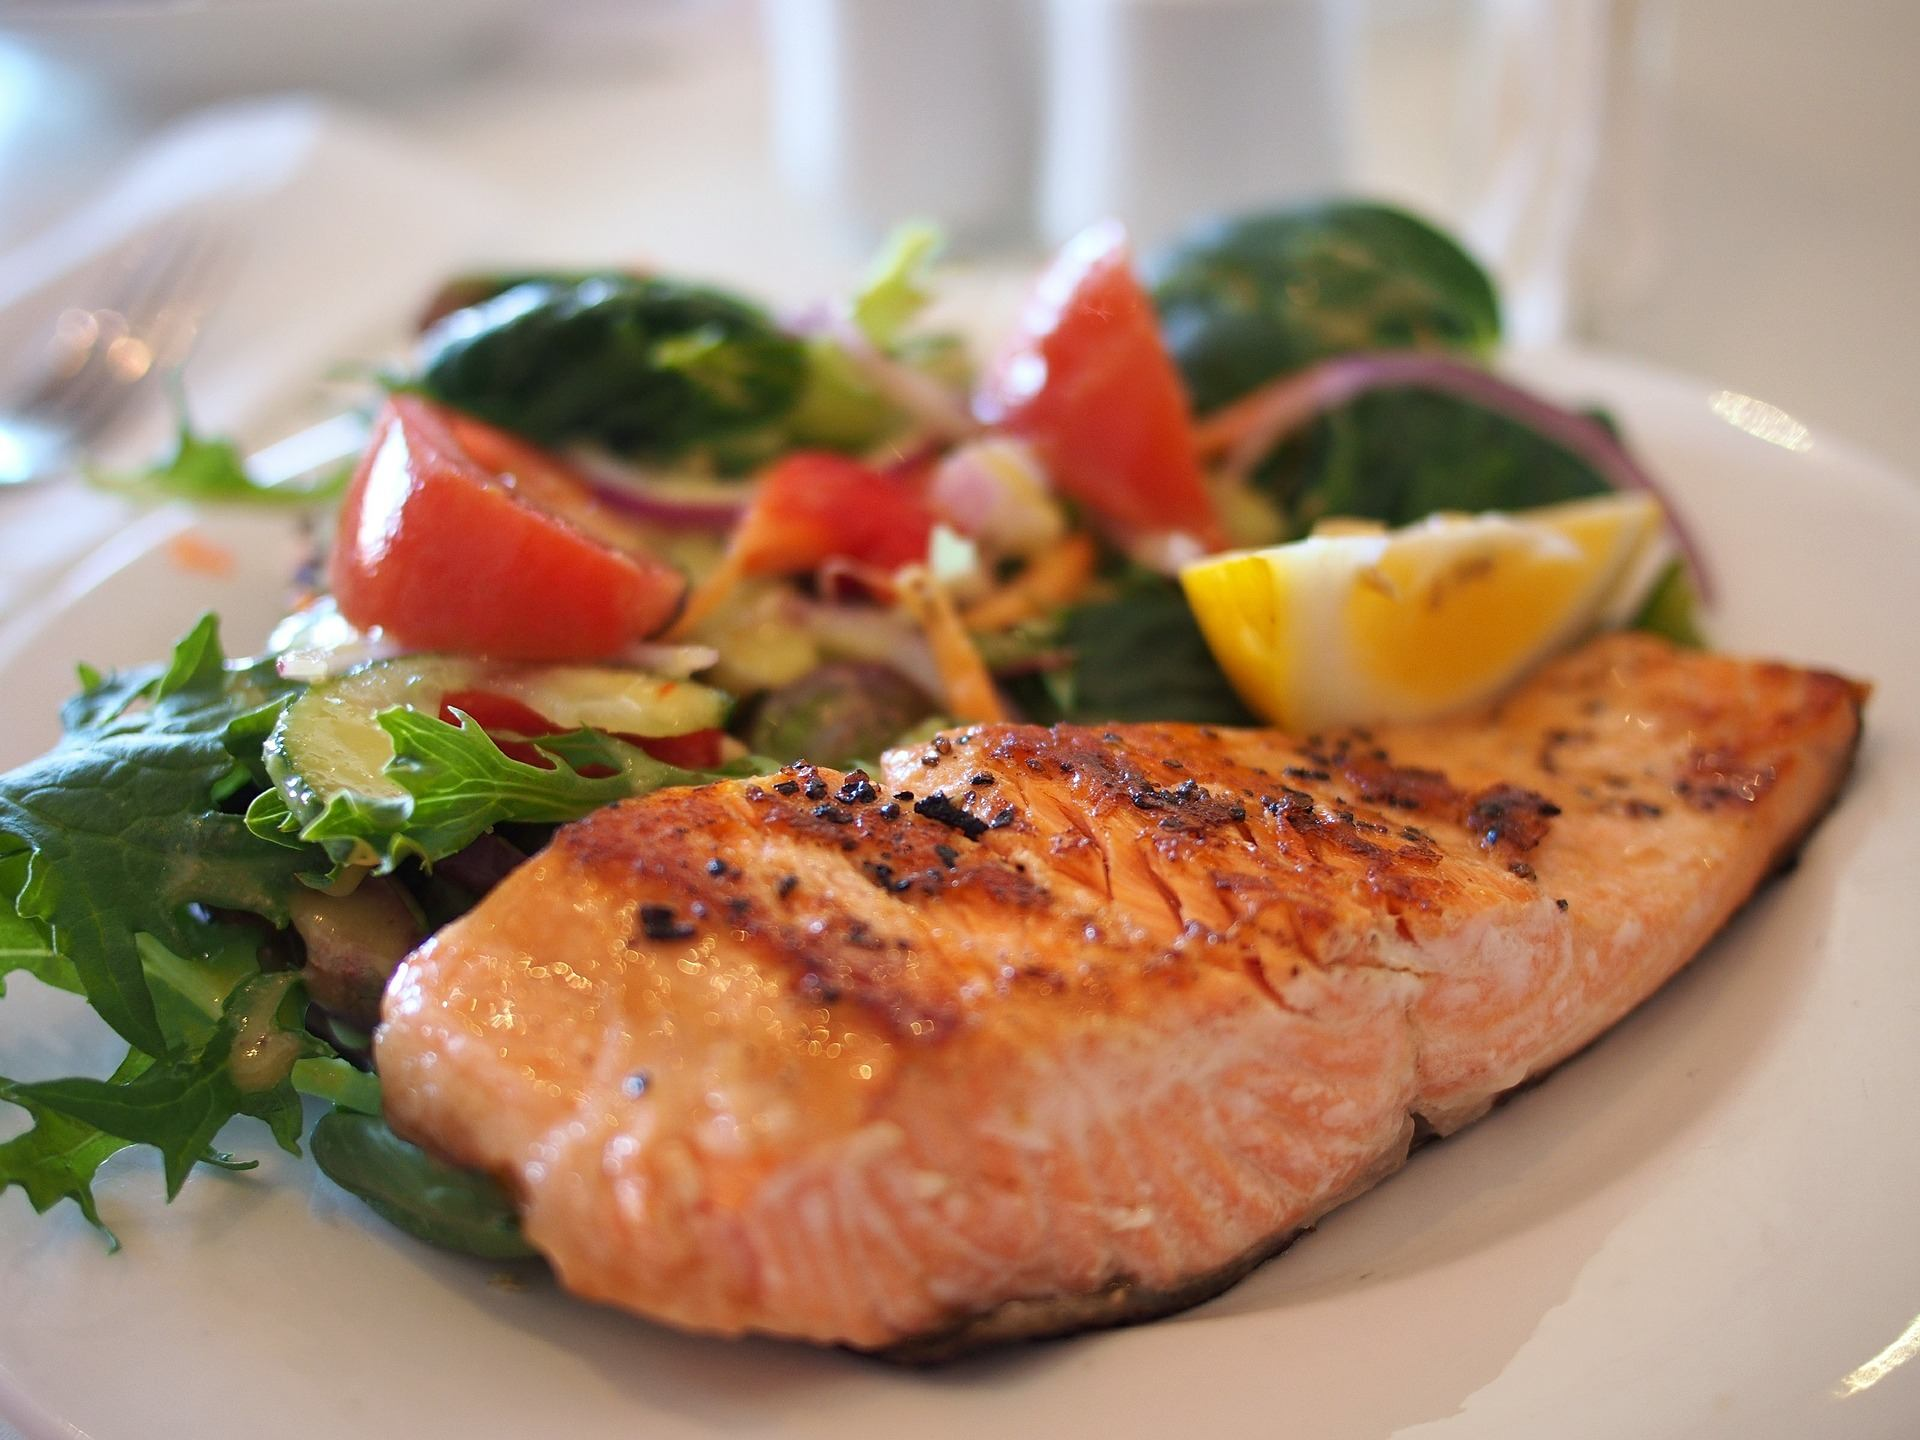 Salmon fillet and vegetables